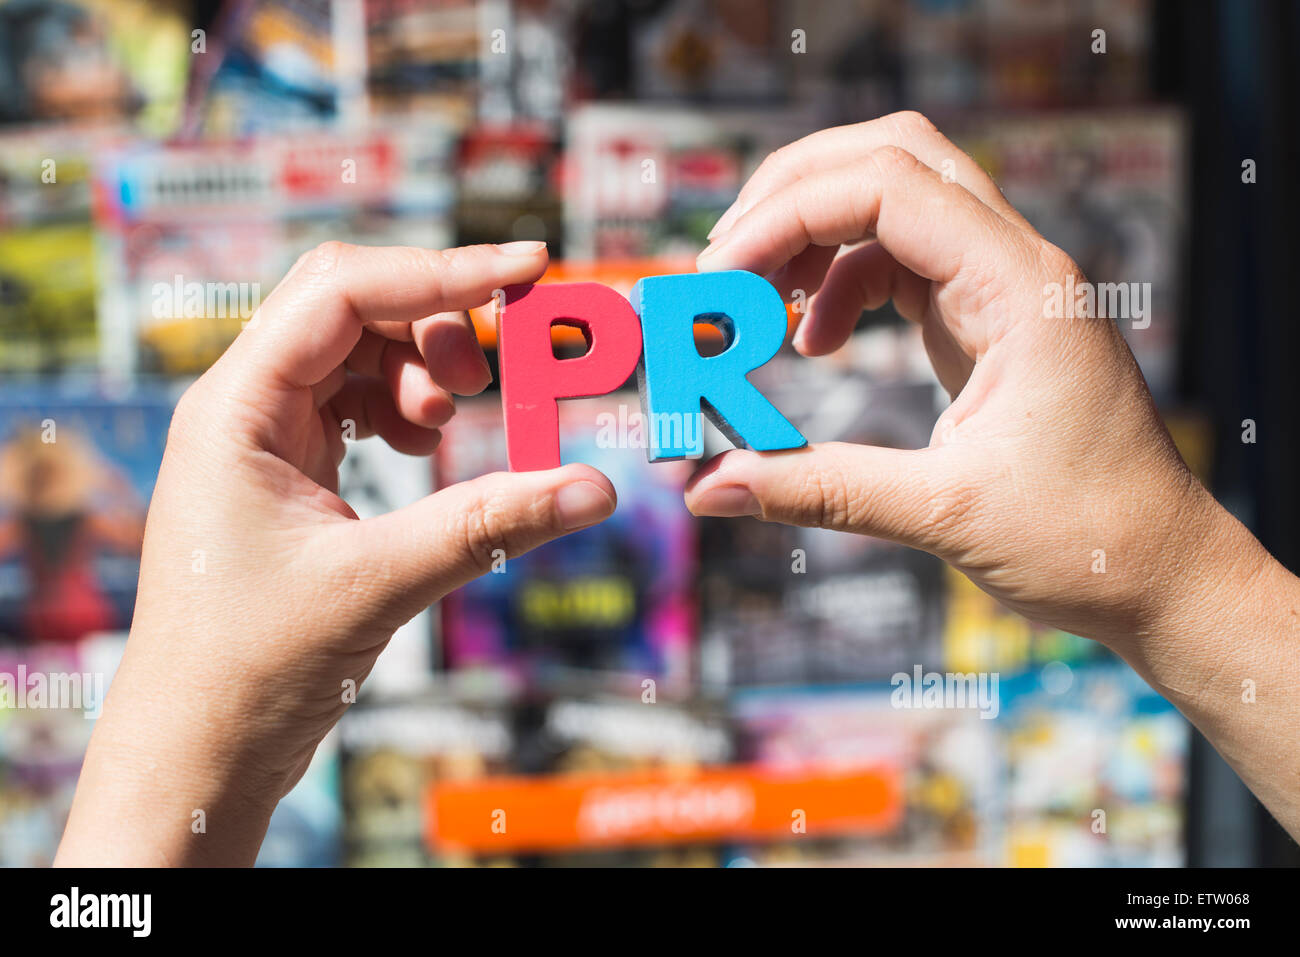 Word PR in front of kiosk for selling newspapers and magazines, hands holding wooden letters - Stock Image